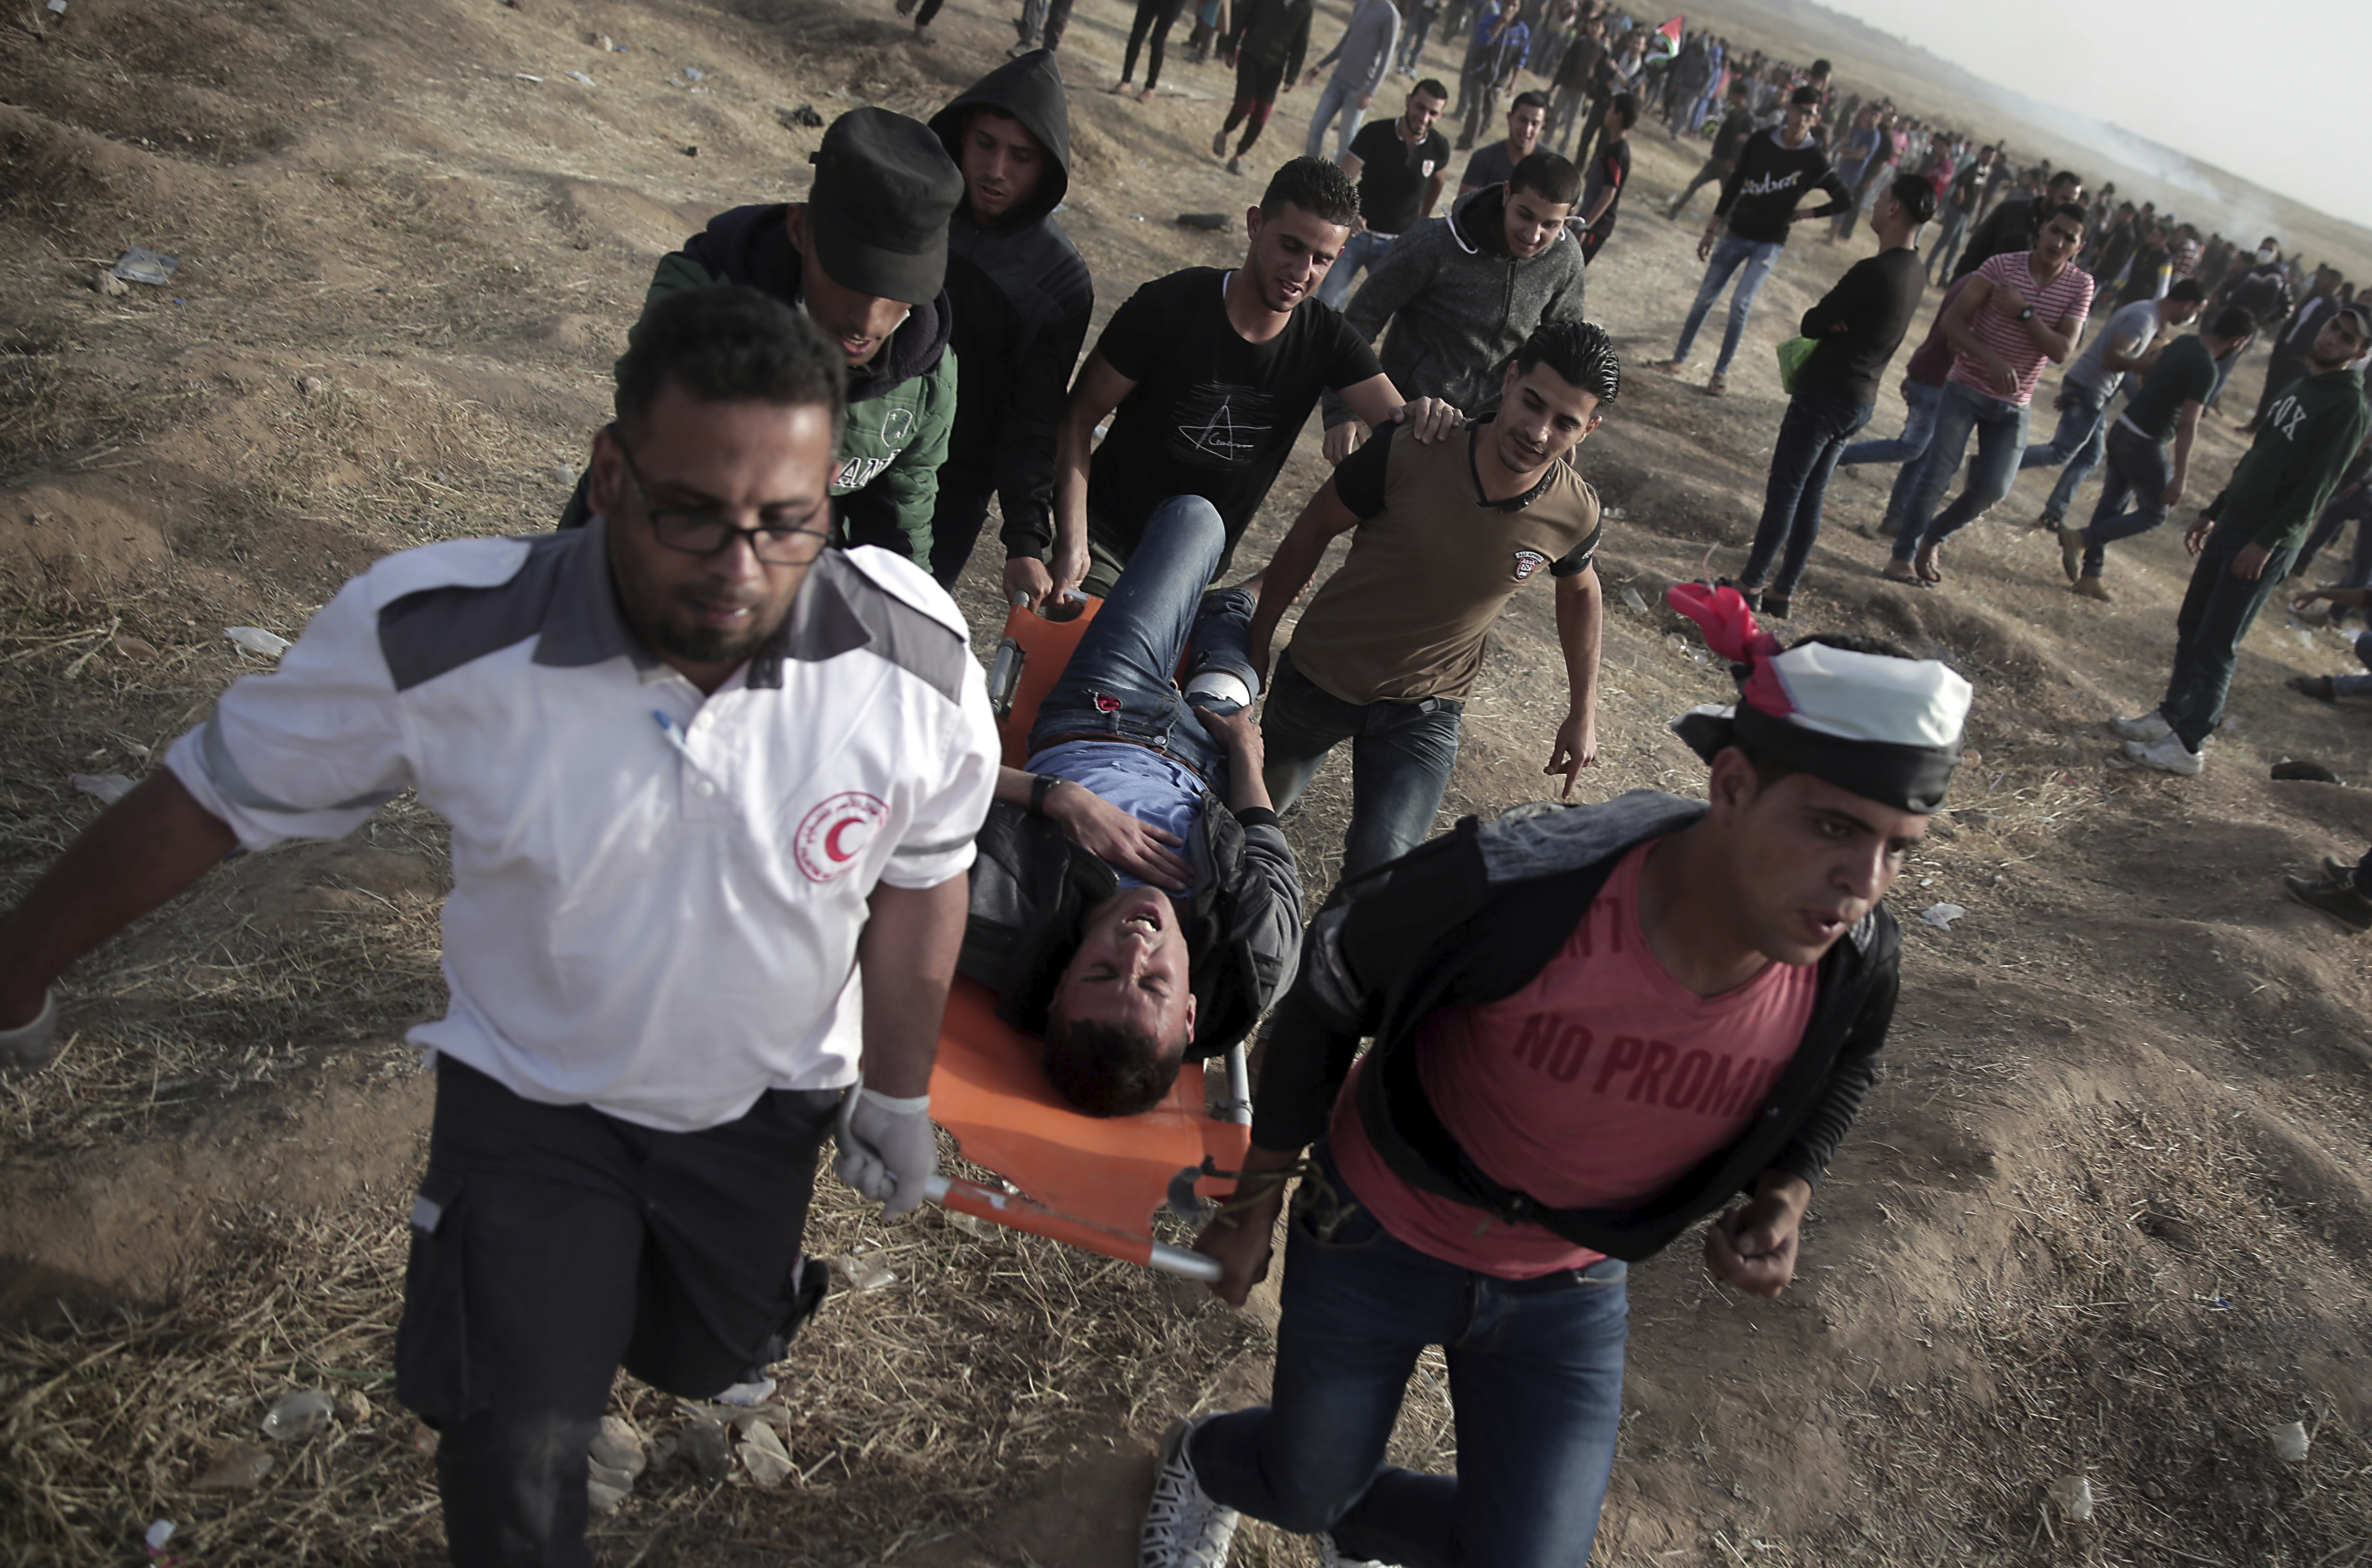 Palestinian protesters evacuate a wounded man during a protest at the Gaza Strip's border with Israel, April 13, 2018.